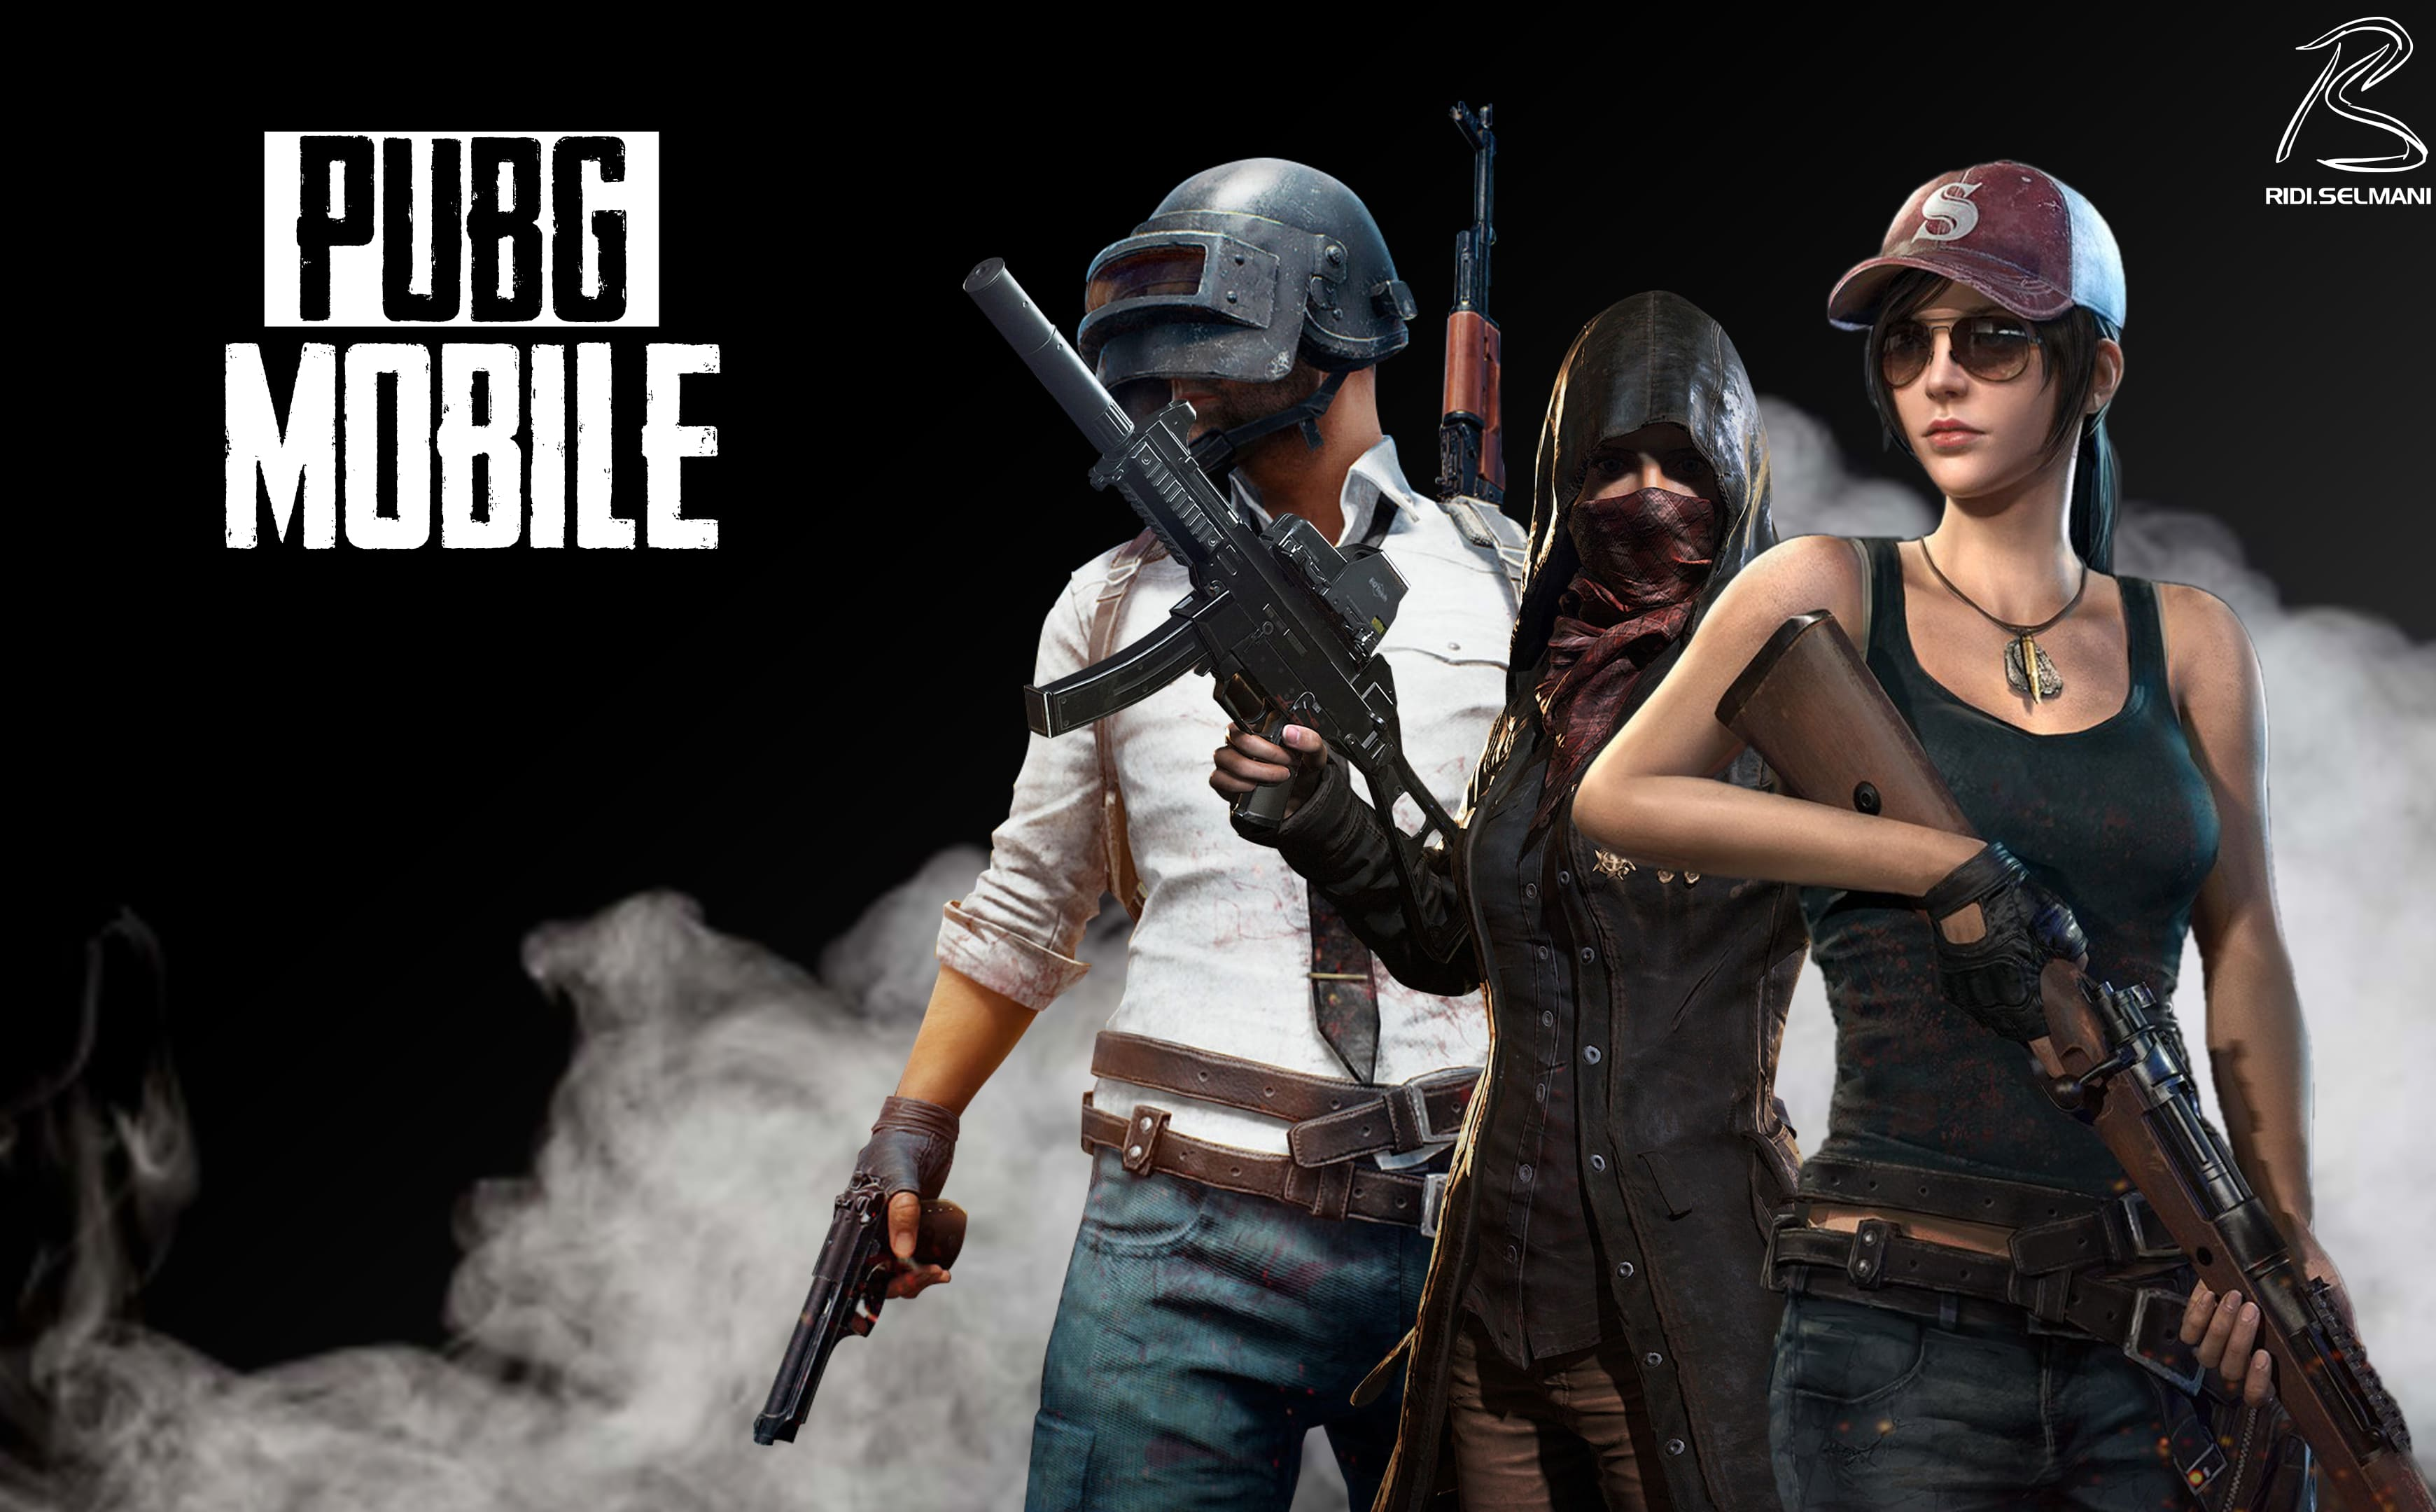 Wallpaper Playerunknown's Battlegrounds, Poster, PUBG